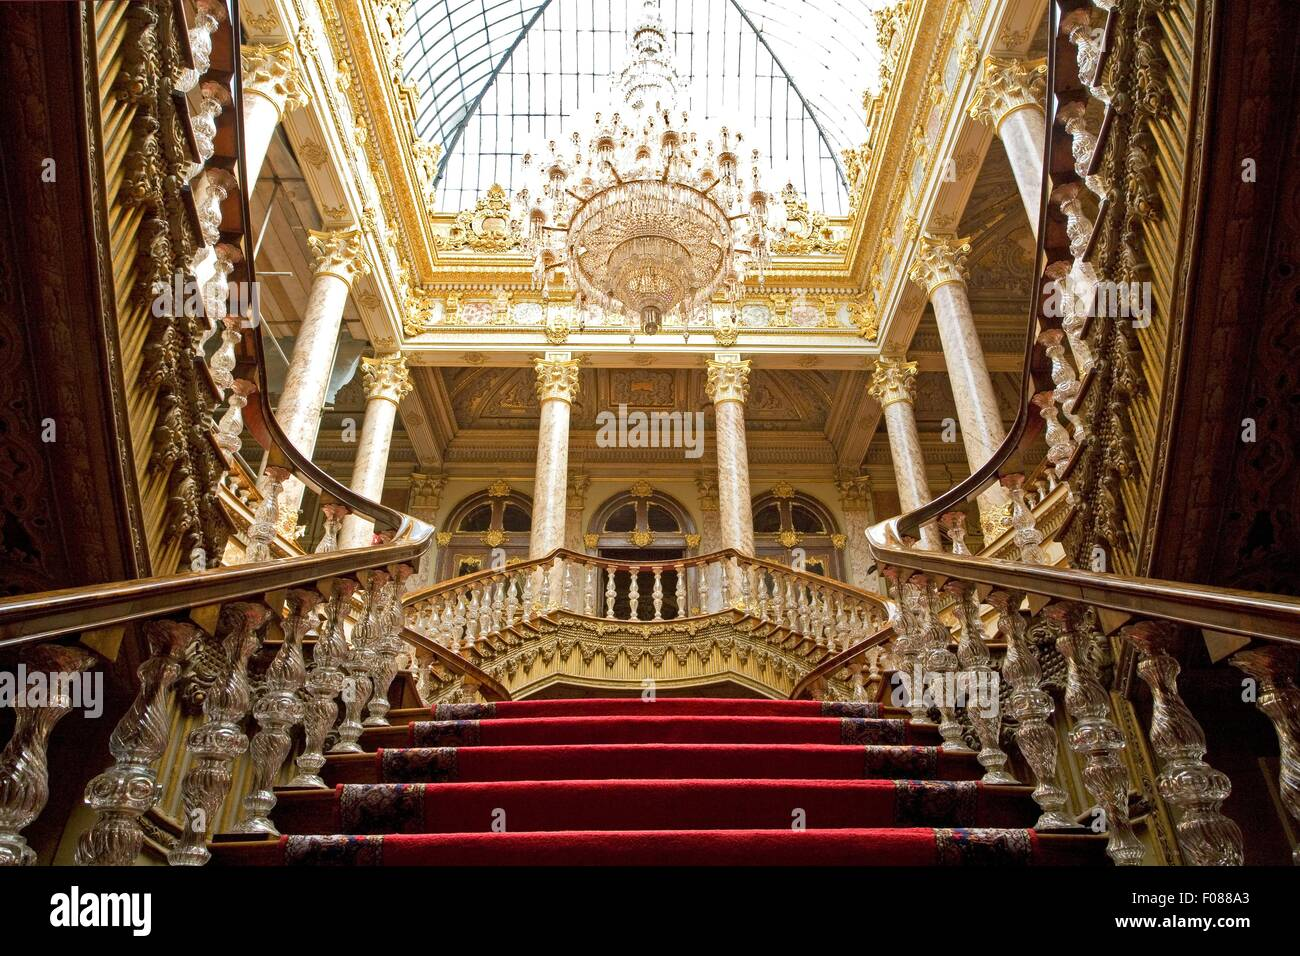 Low angle view of grand staircase at Dolmabahce Palace